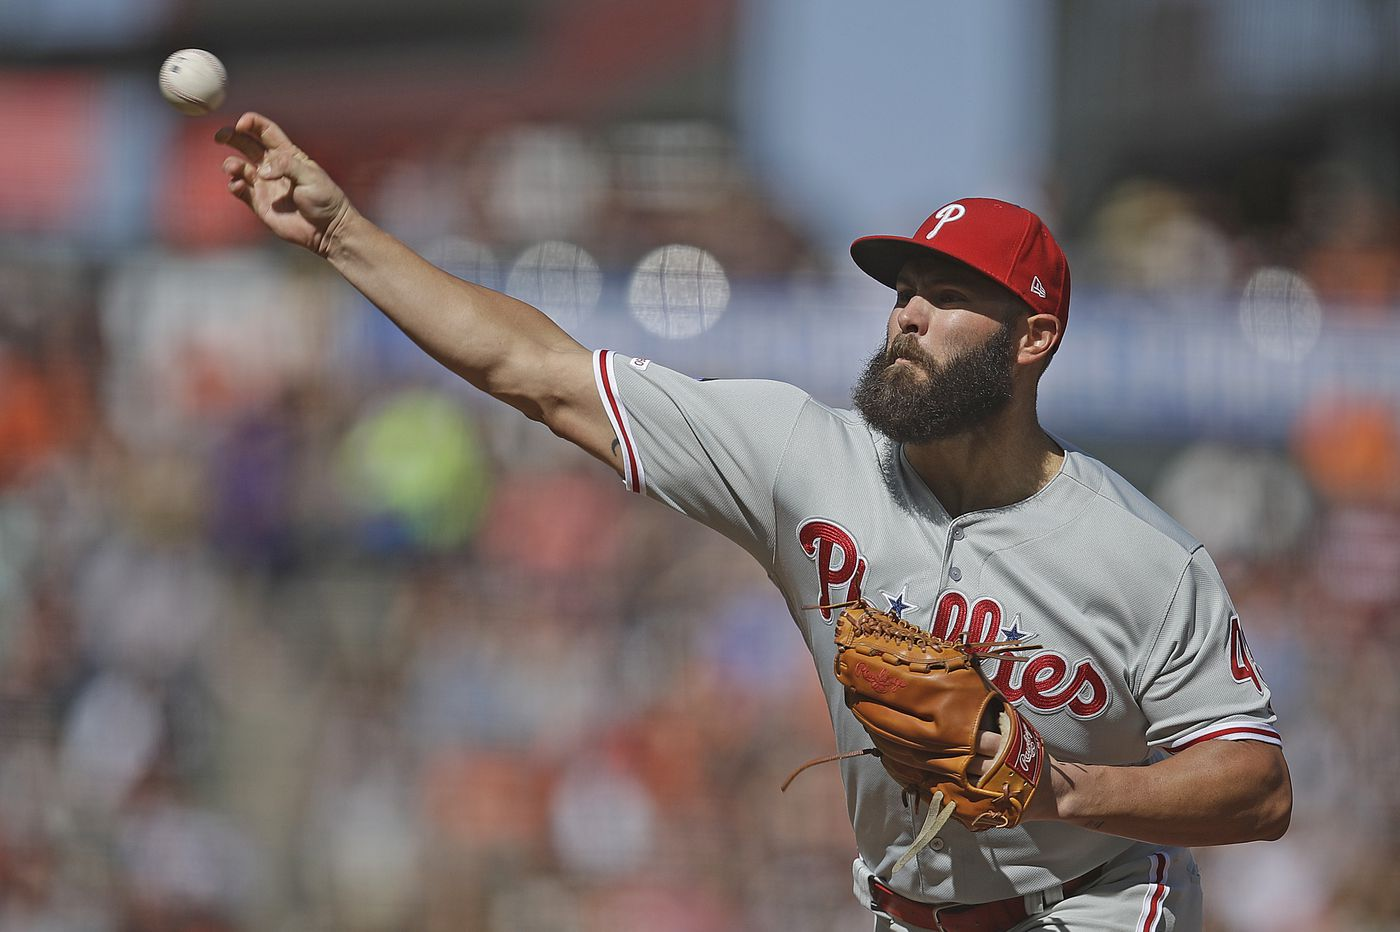 Phillies' Jake Arrieta might 'have a conversation' about surgery to remove painful bone spur